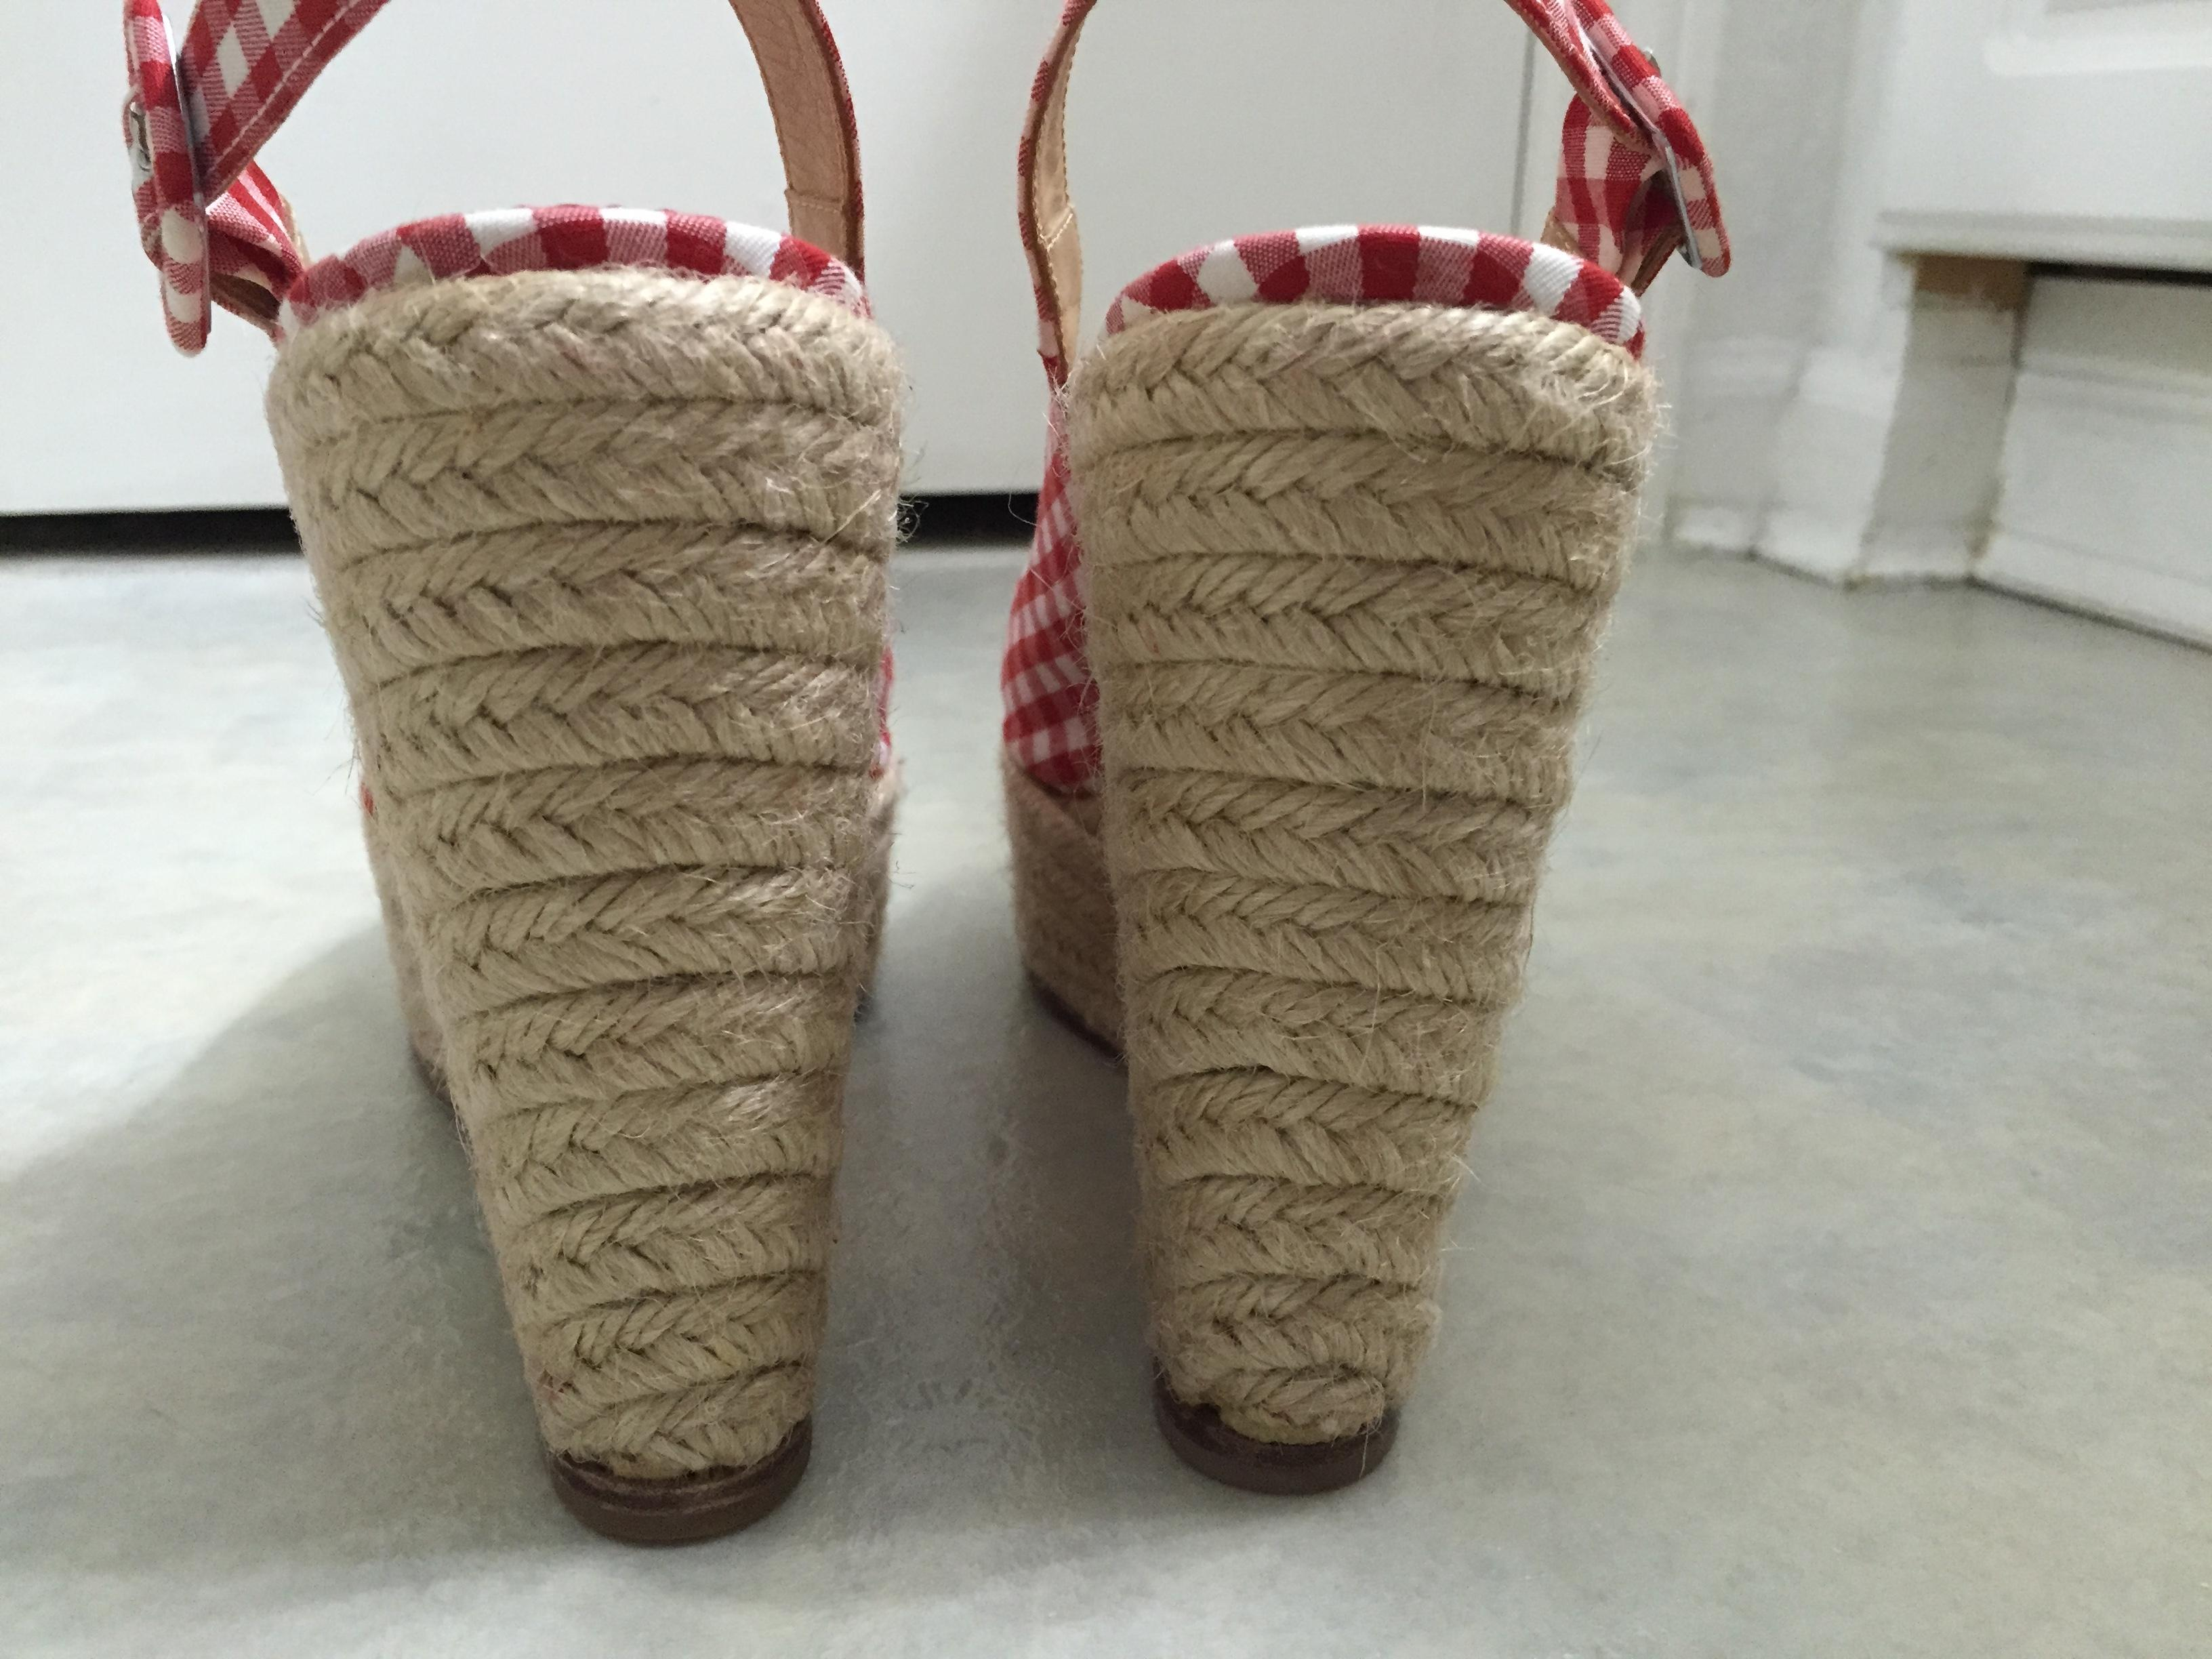 Christian Louboutin Mallorca Gingham Espadrilles free shipping shop cheap limited edition 8lyR0ceYZ